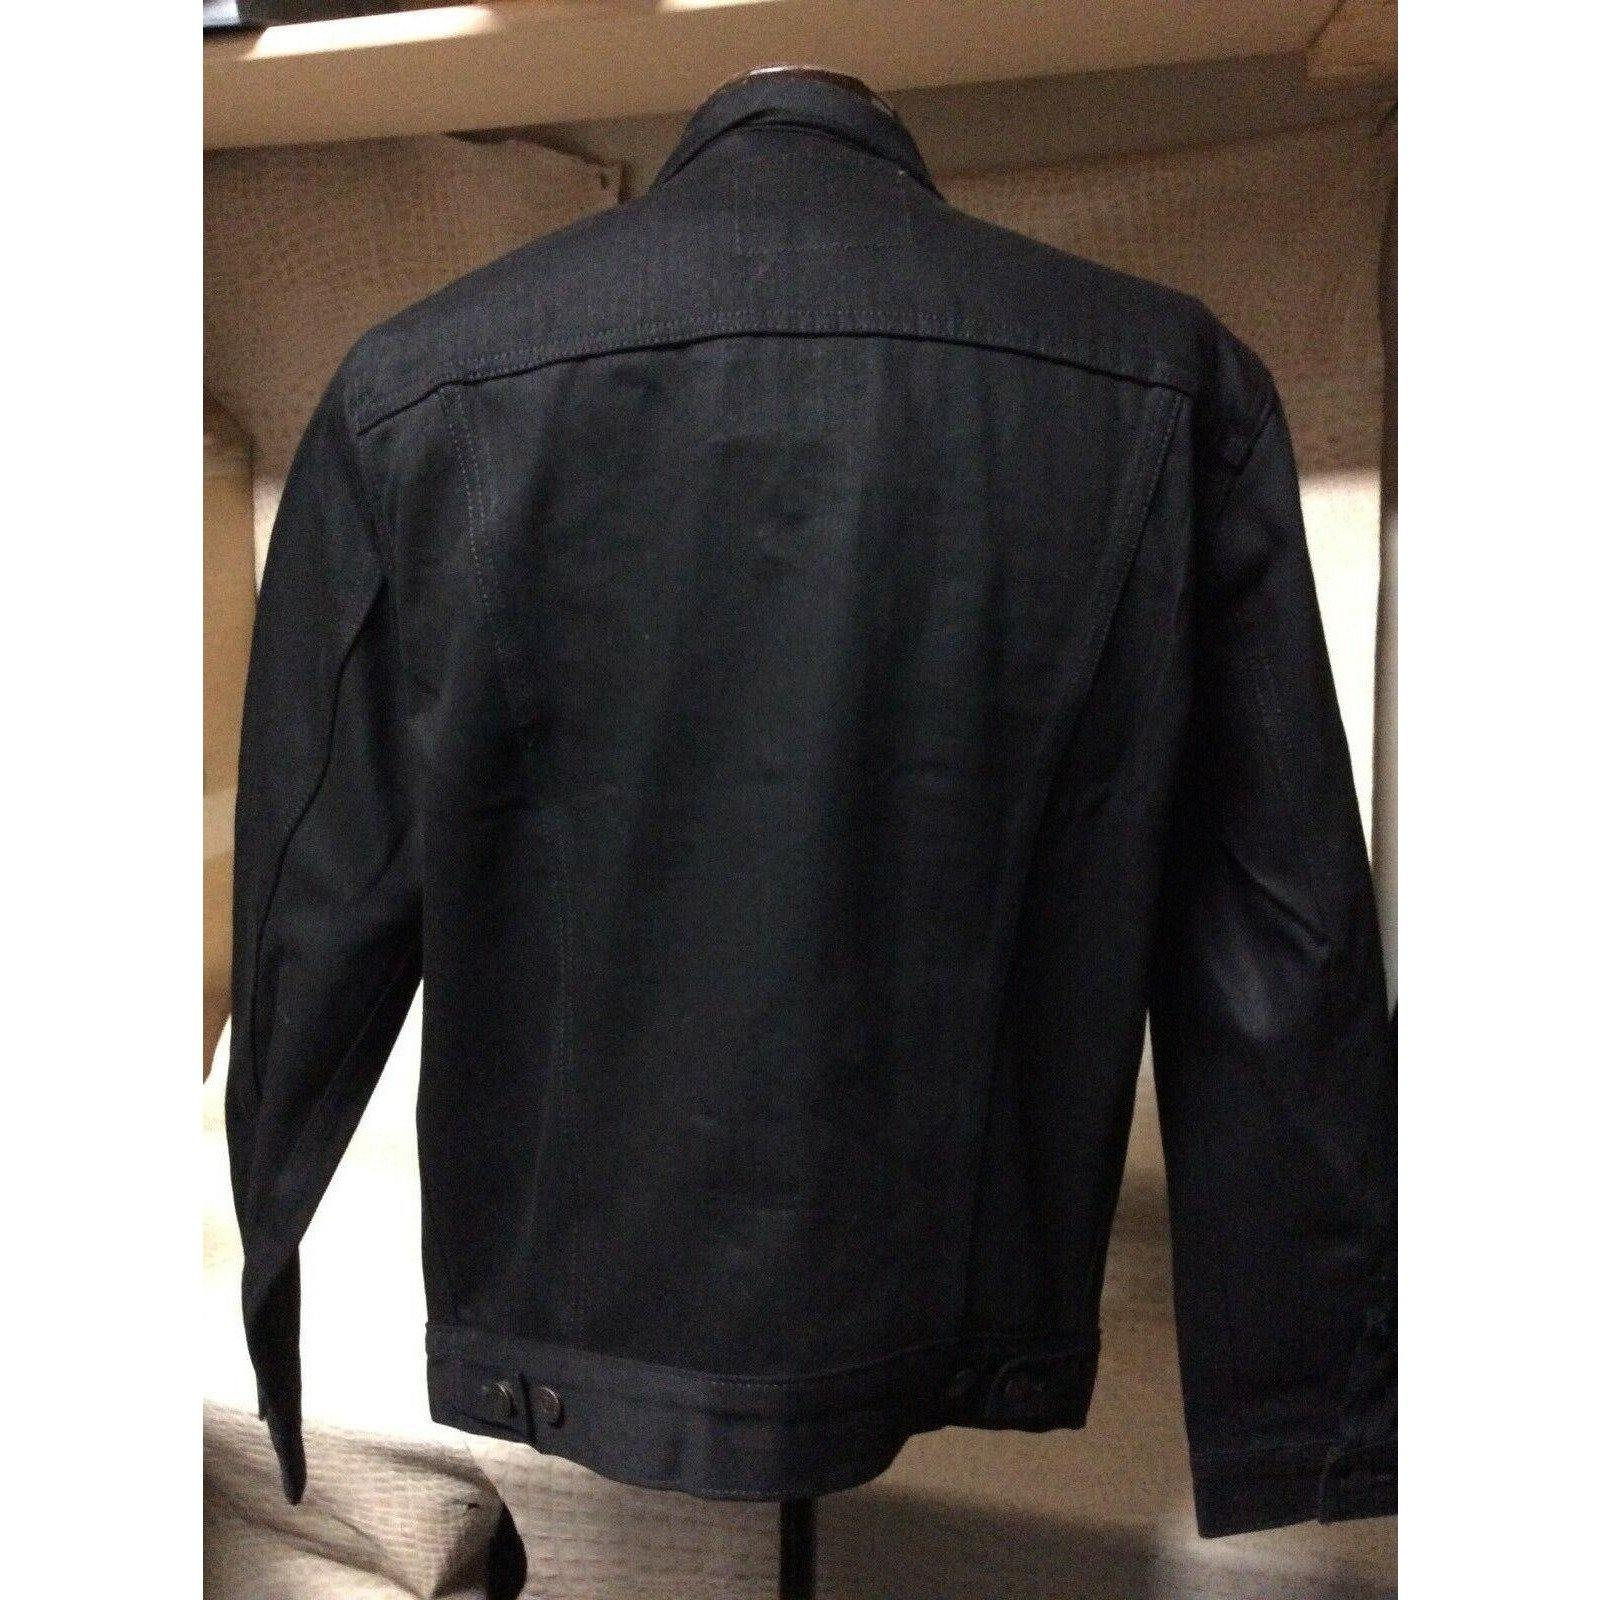 Men's Original Levis Black Stretch Denim Western Cowboy Trucker Jacket - CWesternwear